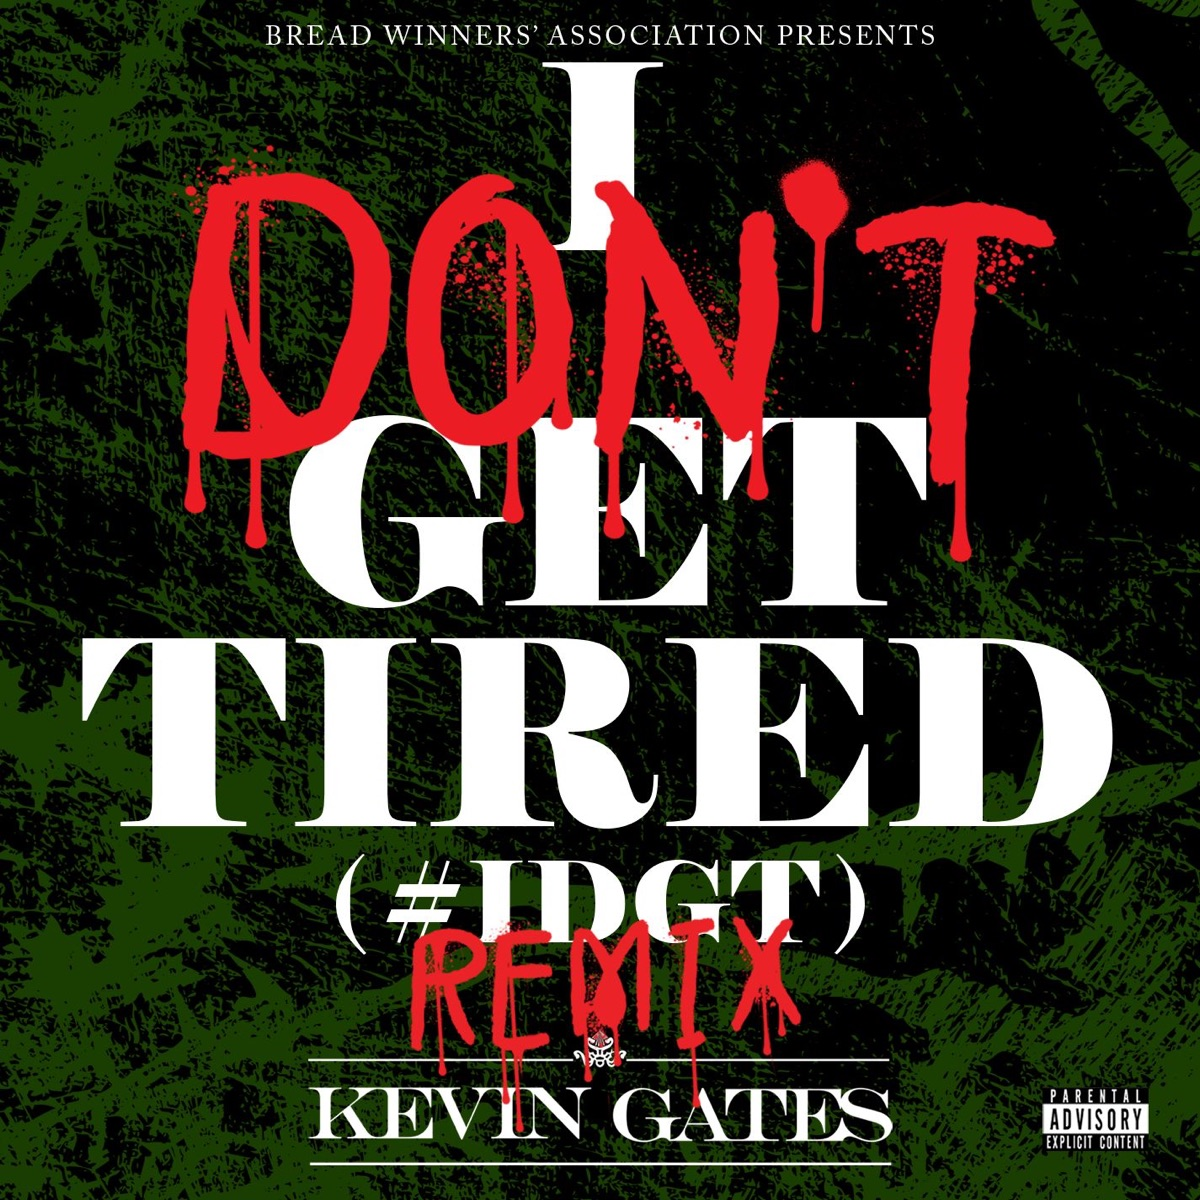 I Don't Get Tired Album Cover by Kevin Gates